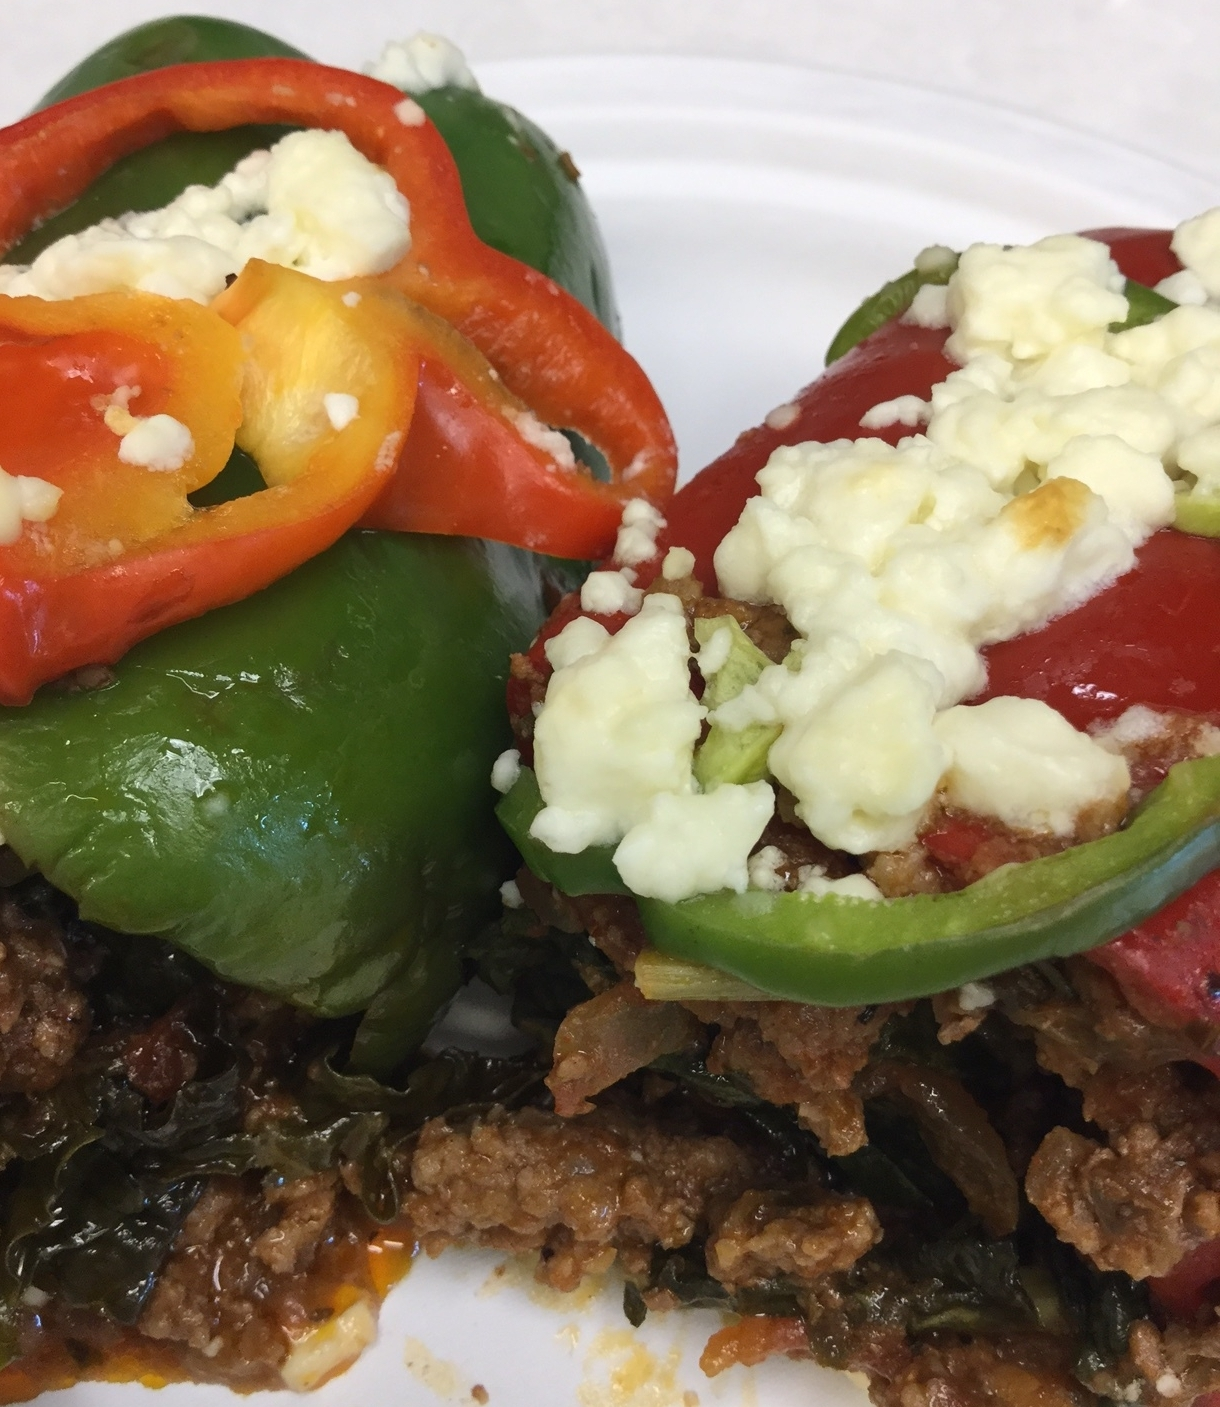 Sloppy Joe Stuffed Pepper - DTG